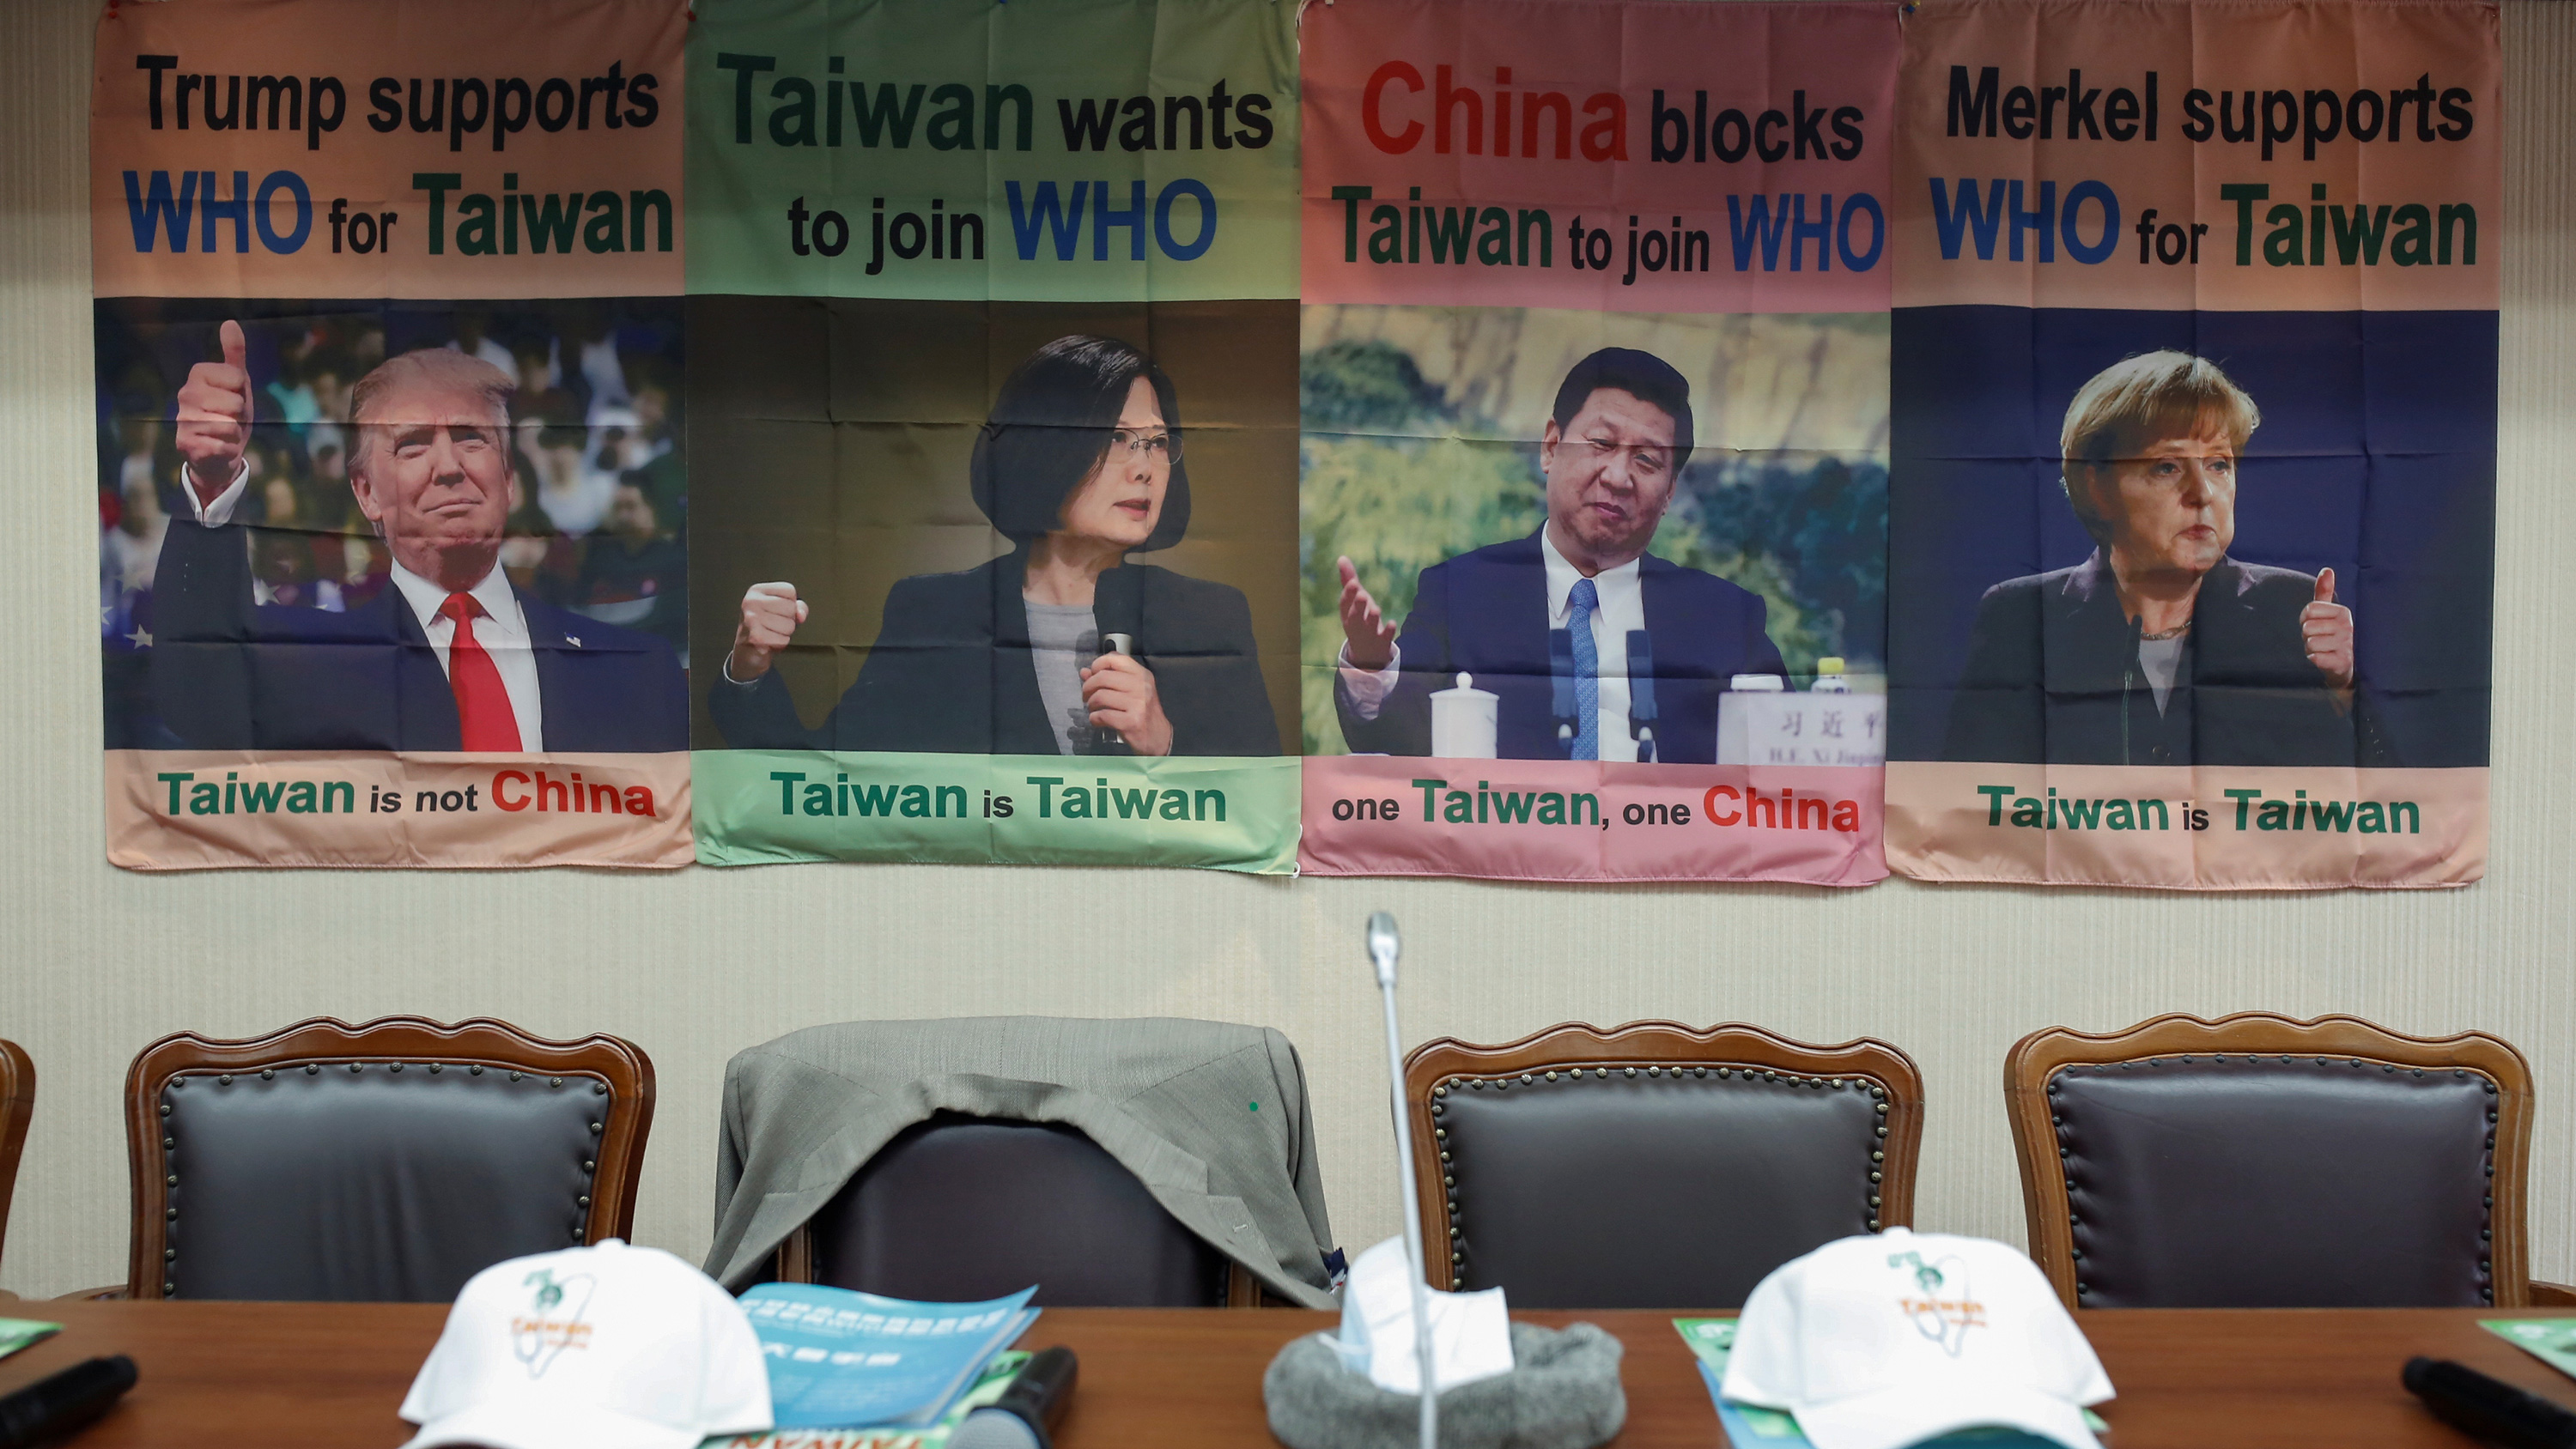 The photo shows empty seats, one with a jacket thrown over the back of it, with posters in the background showing testimonials by world leaders in support of Taiwan's WHO bid.